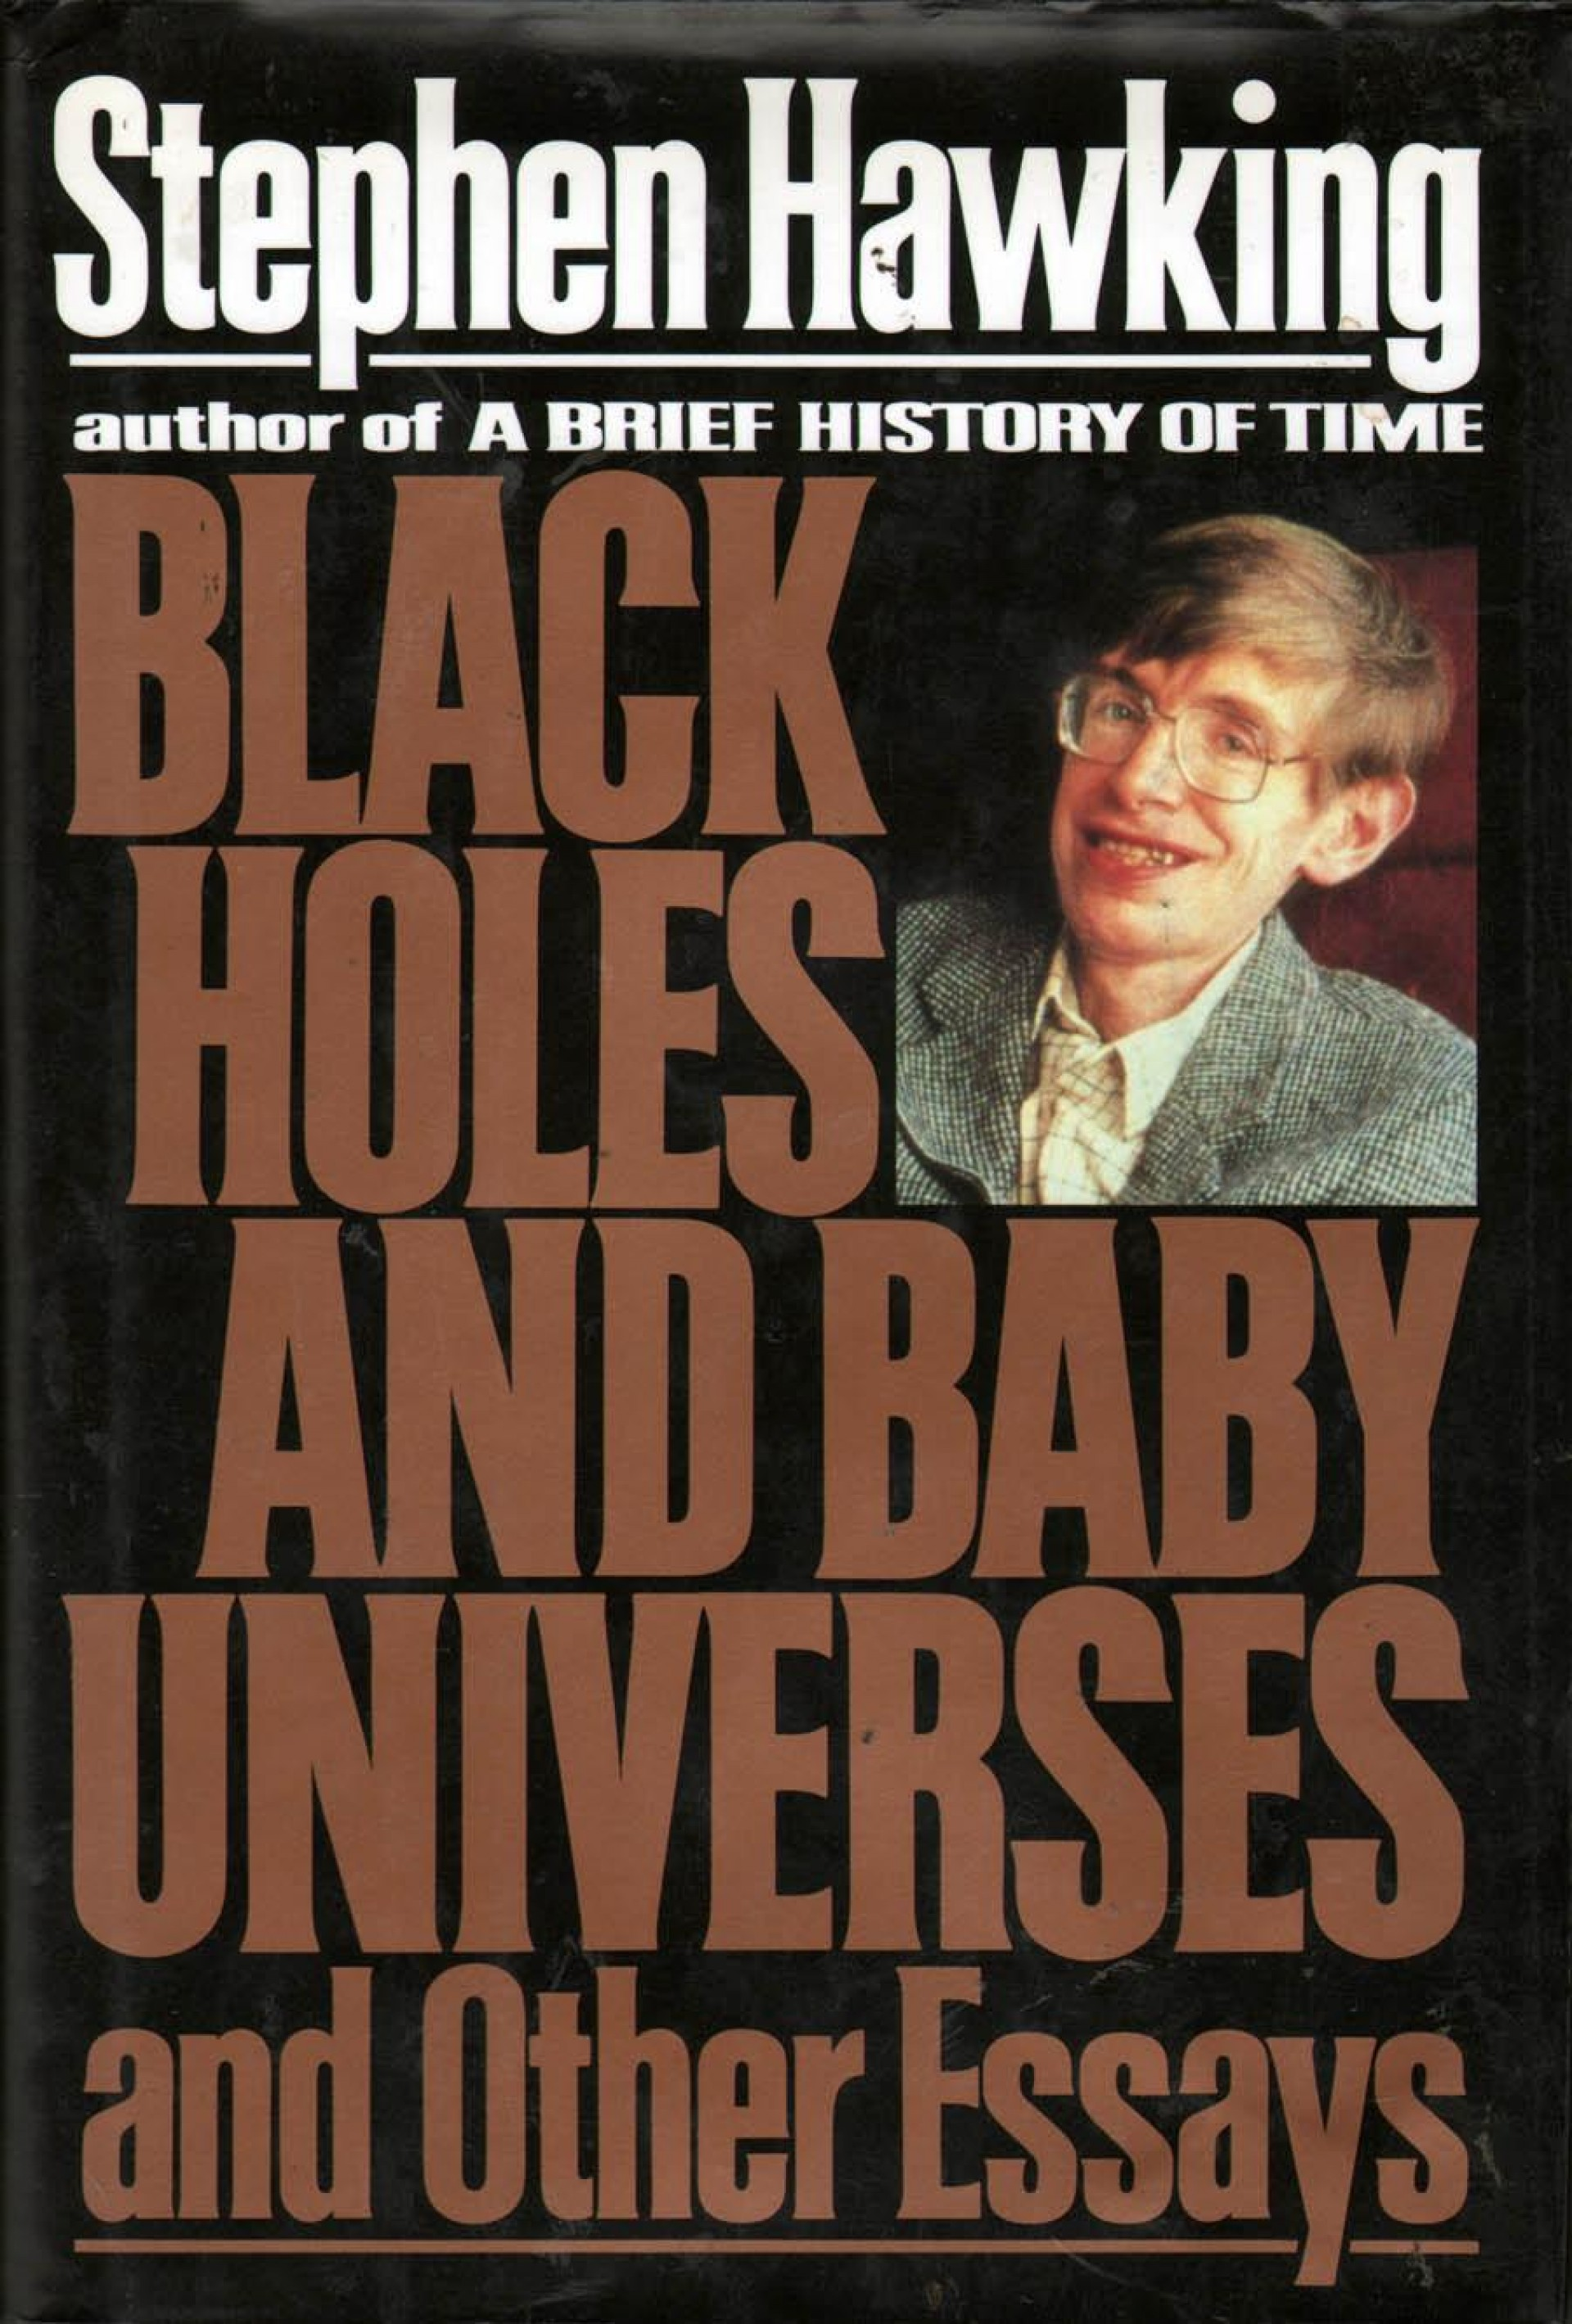 004 Essay Example Black Holes And Baby Universes Other Unique Essays Review Ebook Free Download Amazon 1920